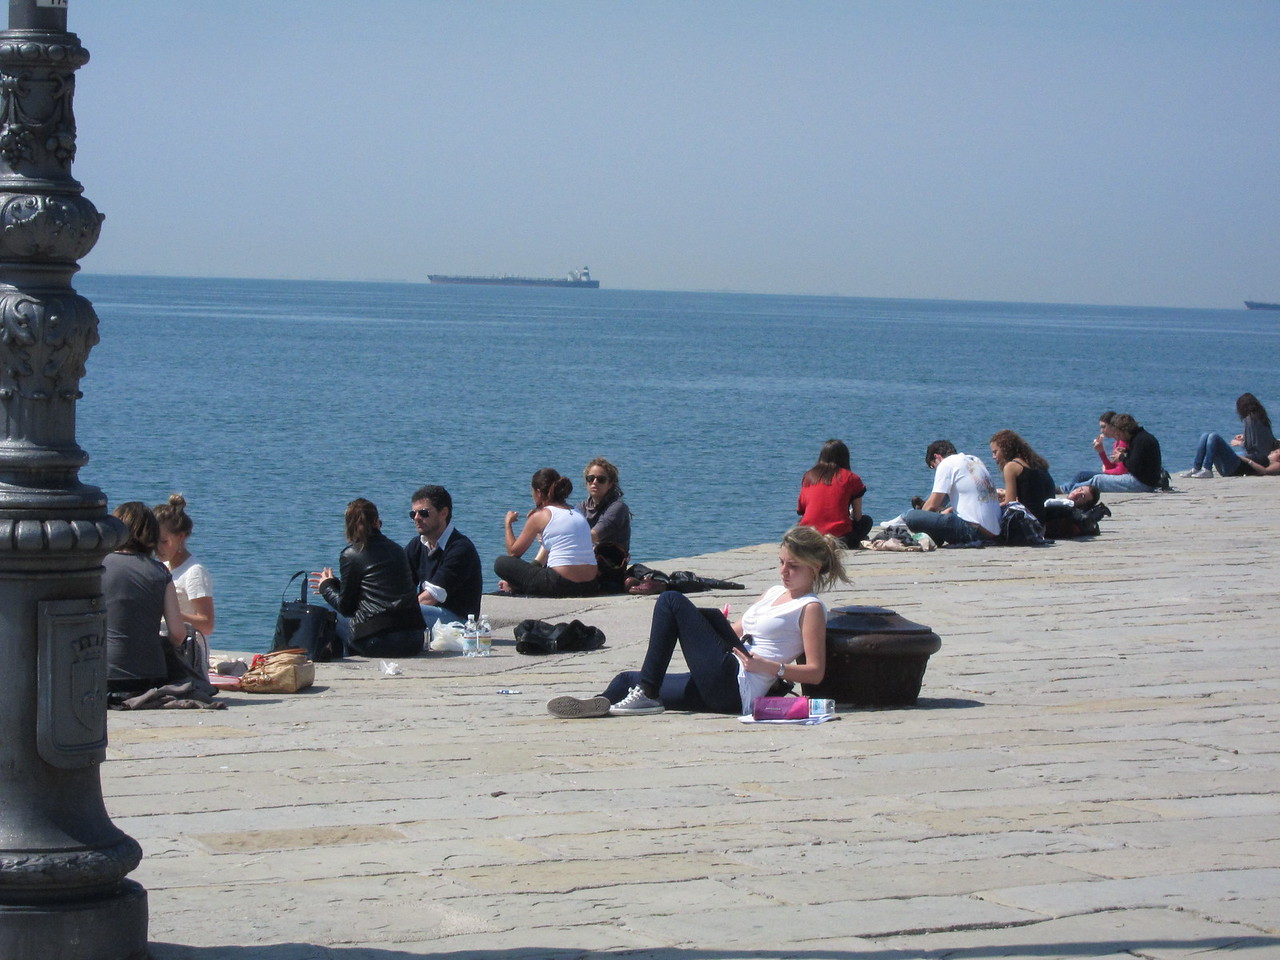 Lunchtime in Trieste